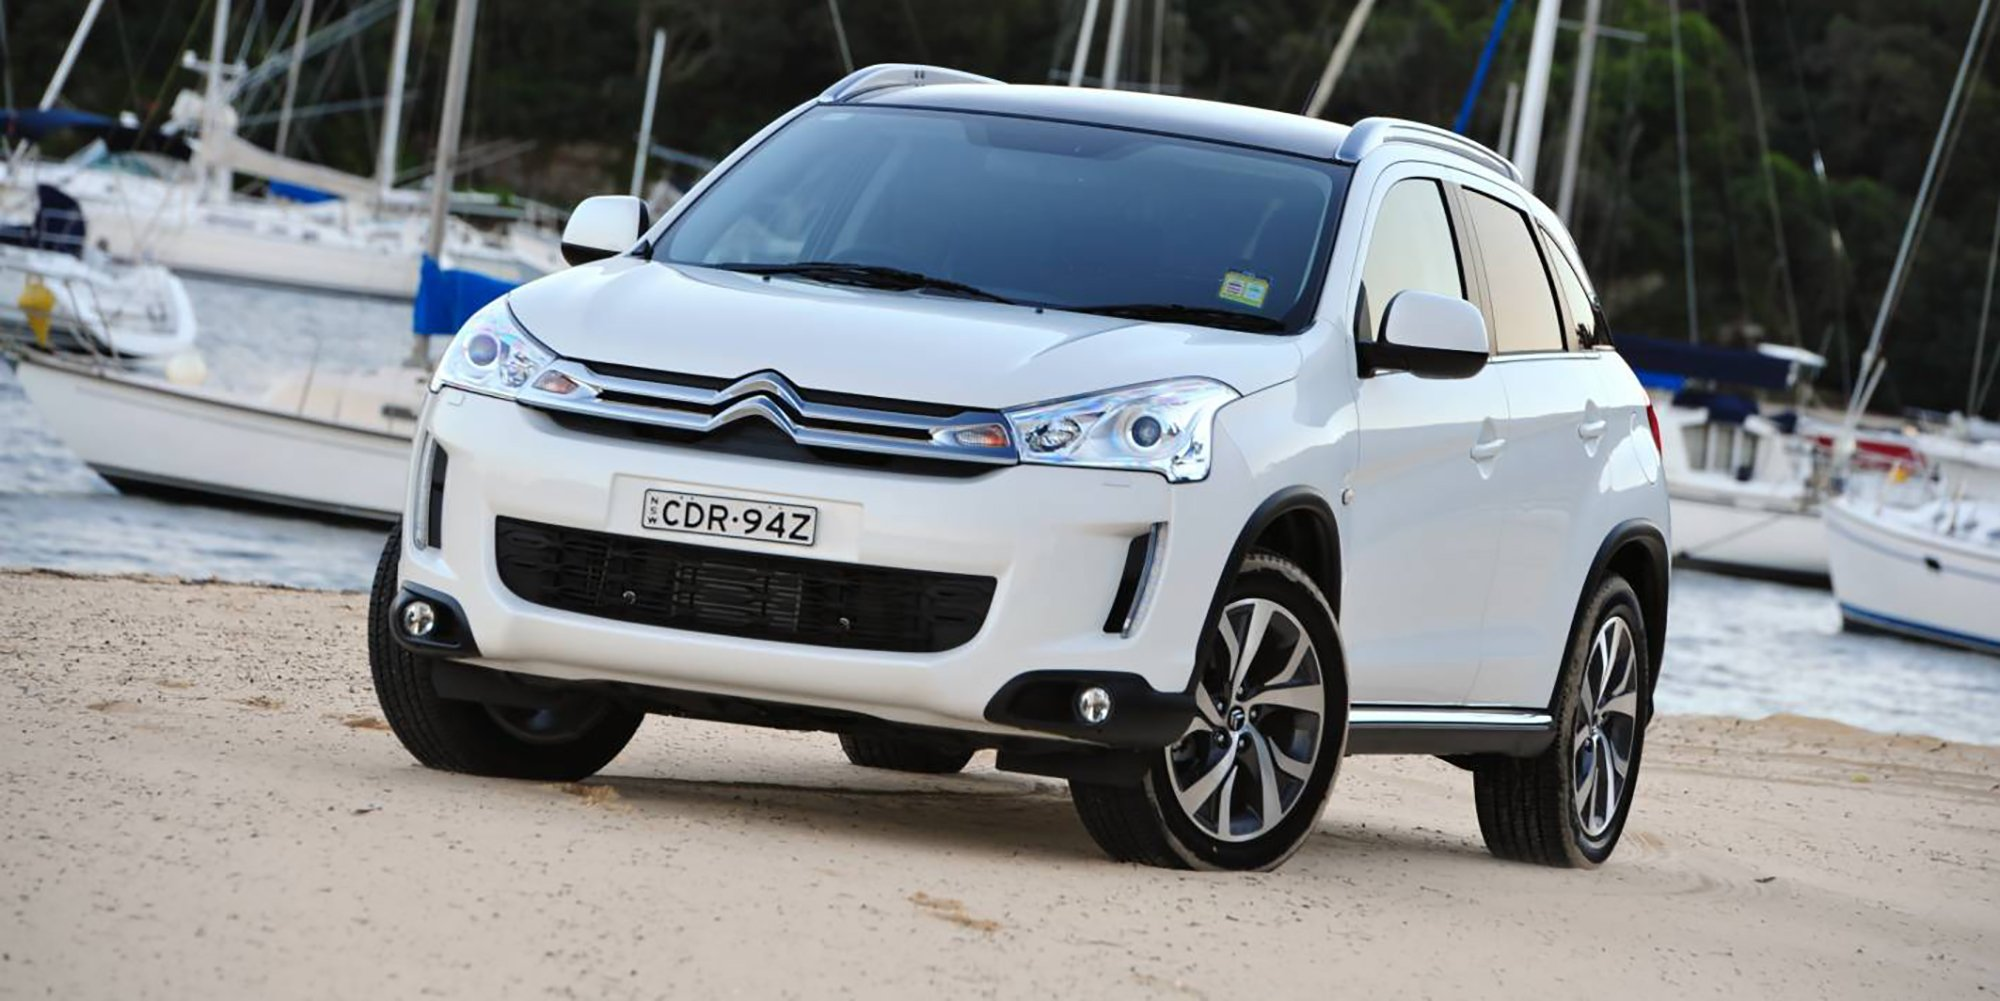 citroen c4 aircross peugeot 4008 recalled for wiper fix. Black Bedroom Furniture Sets. Home Design Ideas